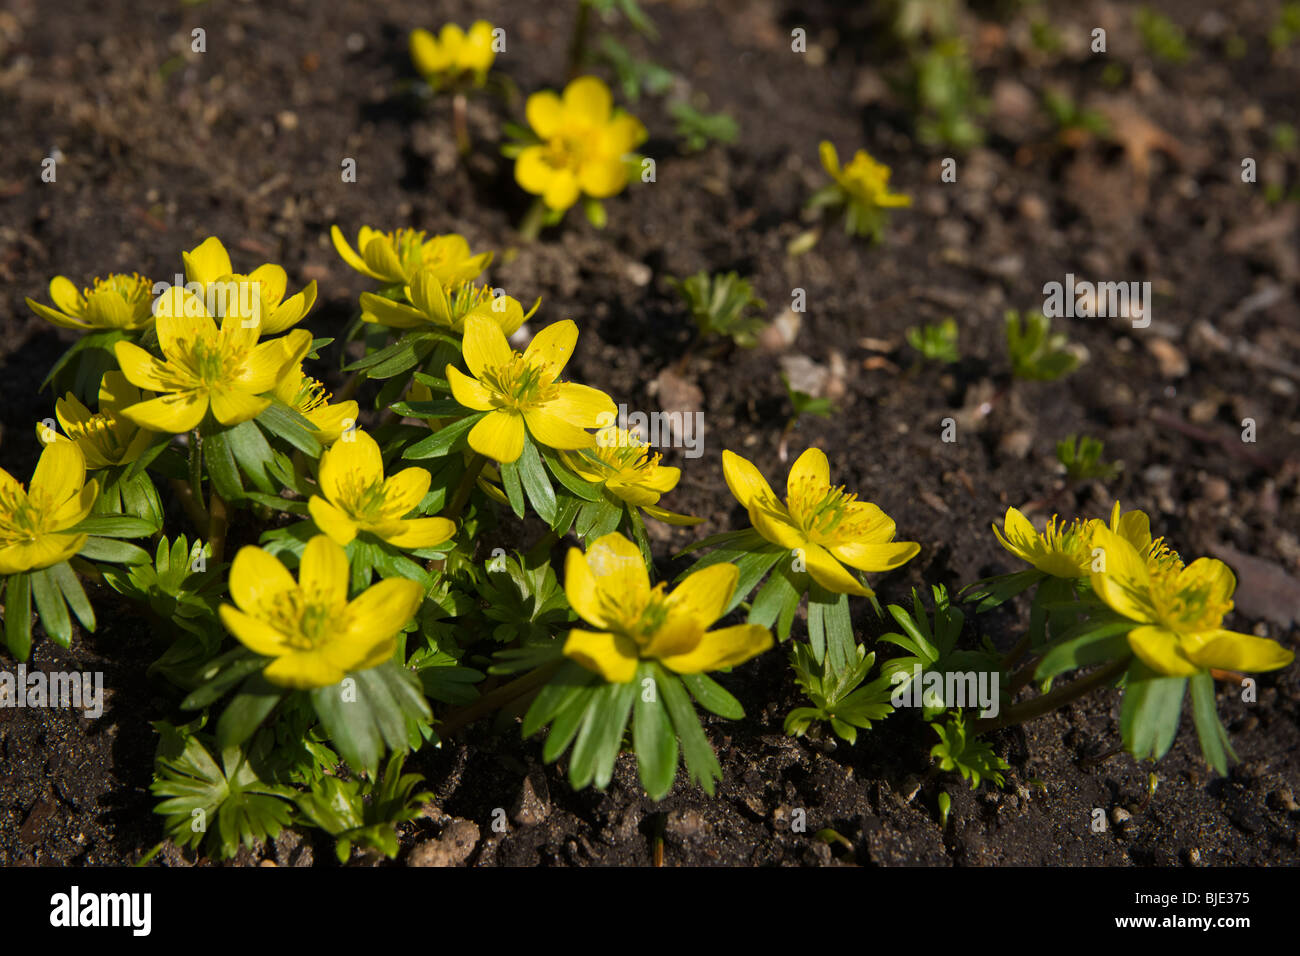 Aconite flowers stock photos aconite flowers stock images page 3 blooming yellow winter aconite eranthis hyemalis flowers in early spring close up stock mightylinksfo